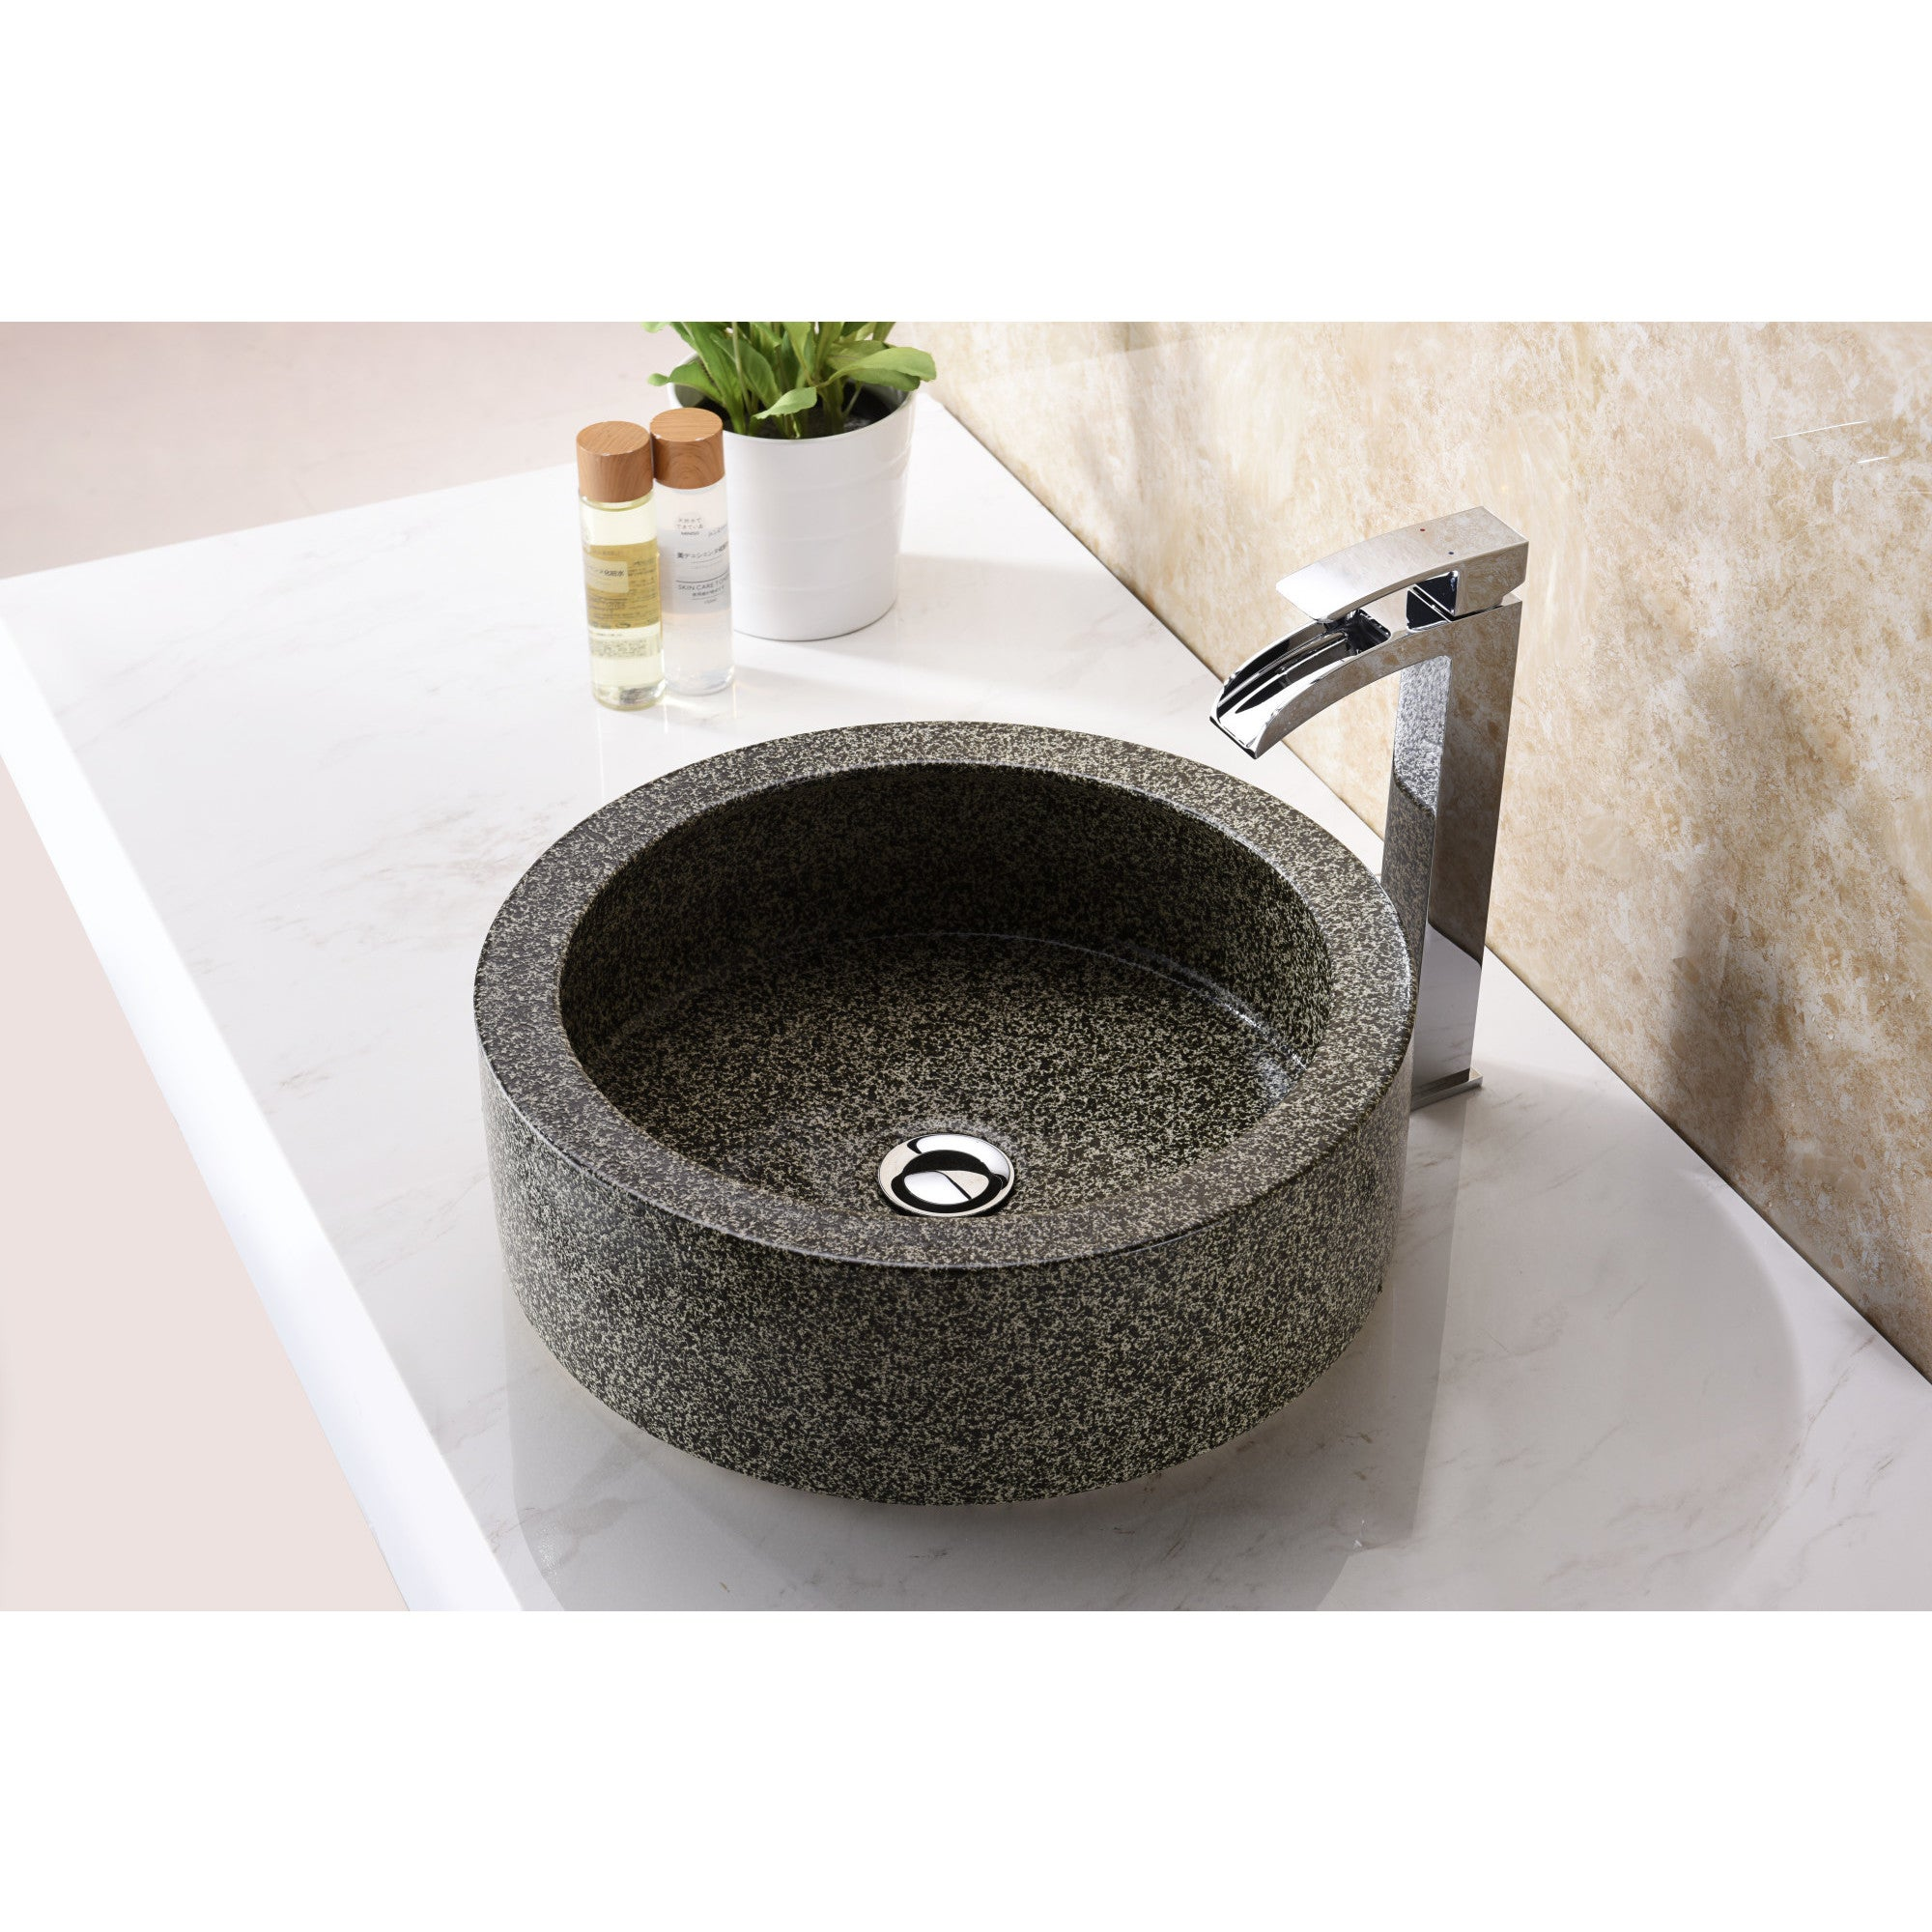 ANZZI Black Desert Crown Vessel Sink In Speckled Stone   Free Shipping  Today   Overstock.com   22668384